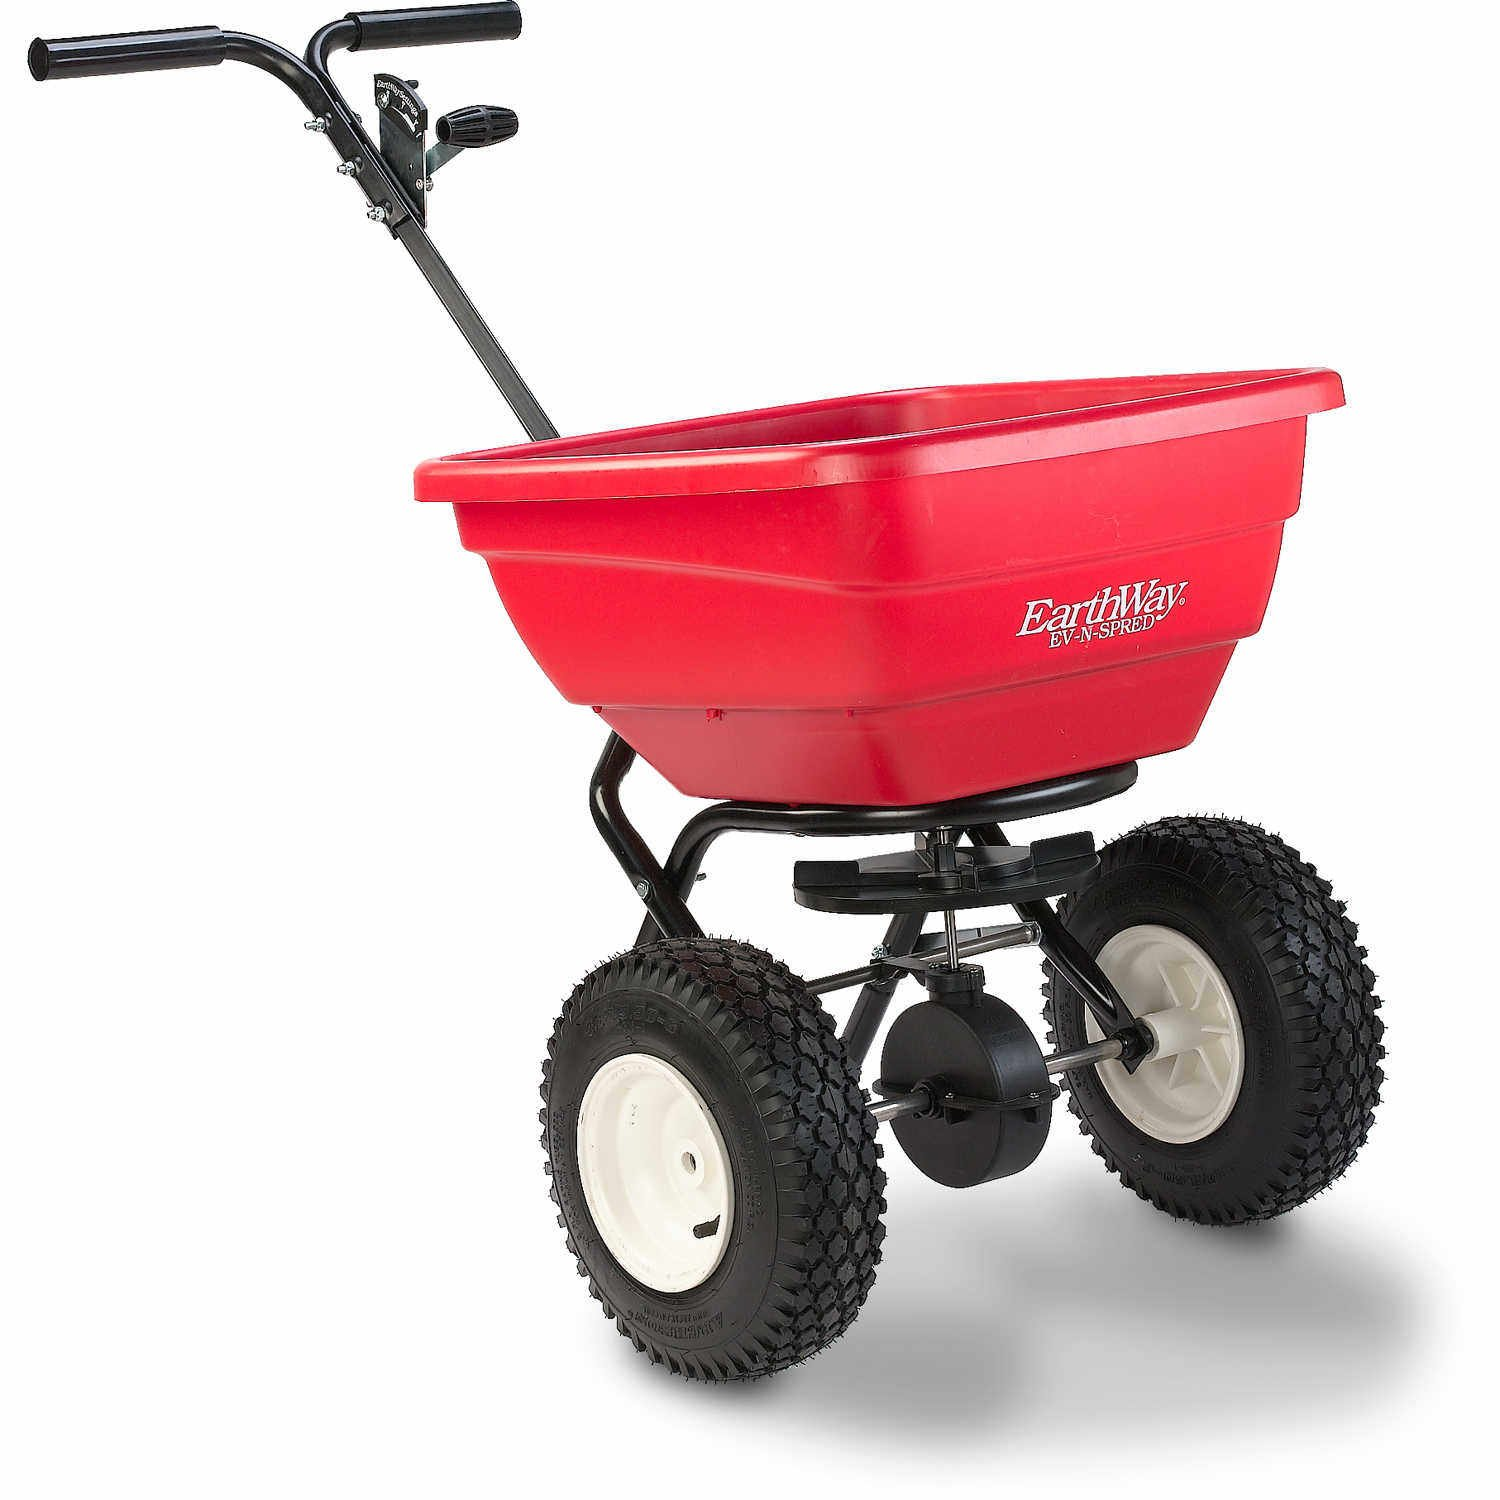 EARTH FRIENDLY PRODUCTS F80 Broadcast Spreader by Earth Friendly Products